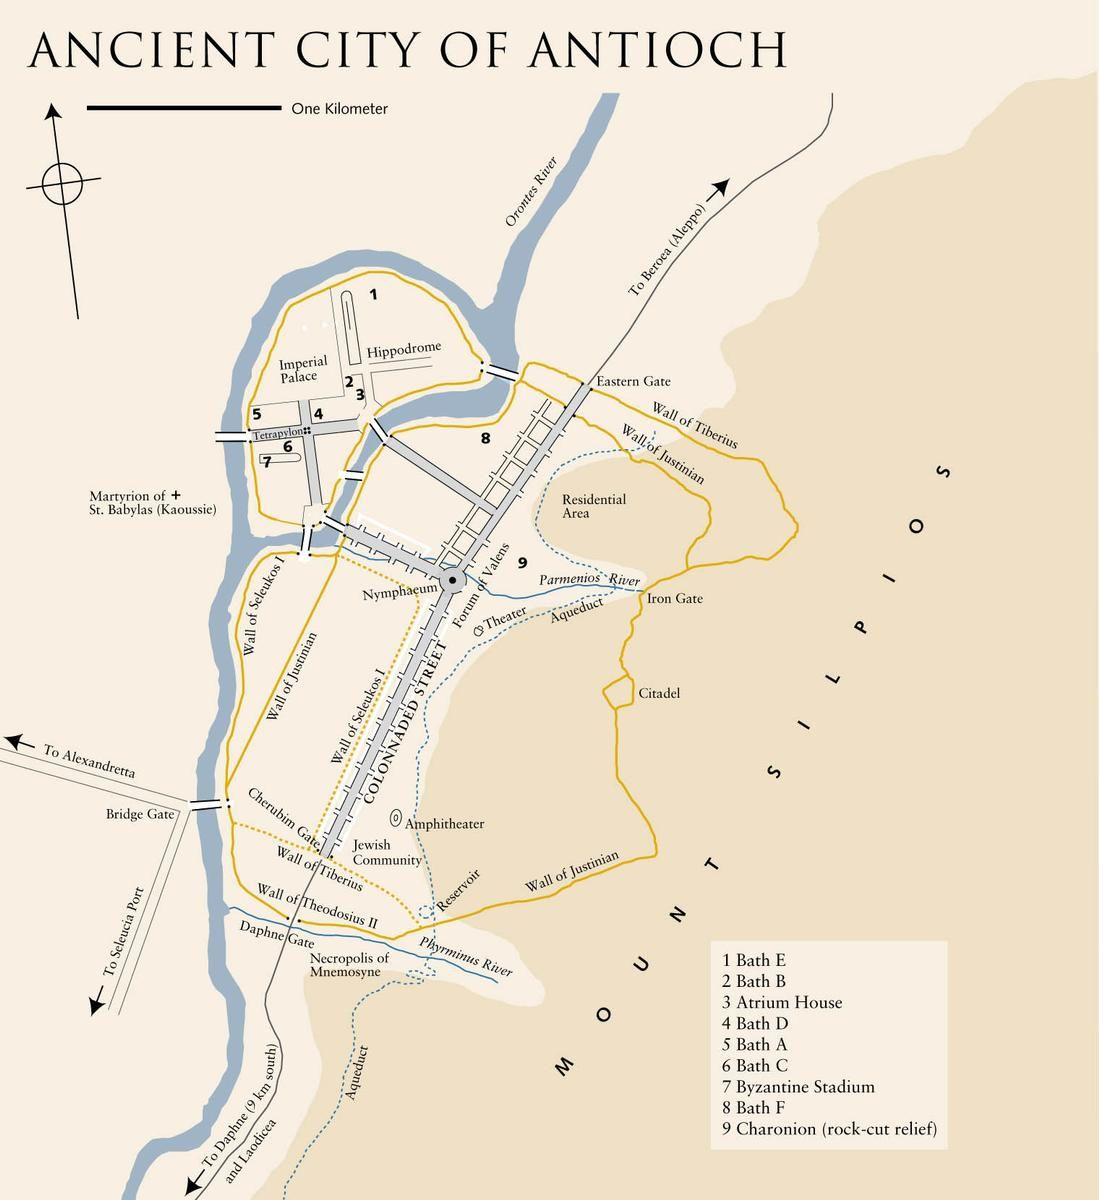 The ancient city of Antioch | Maps | Pinterest